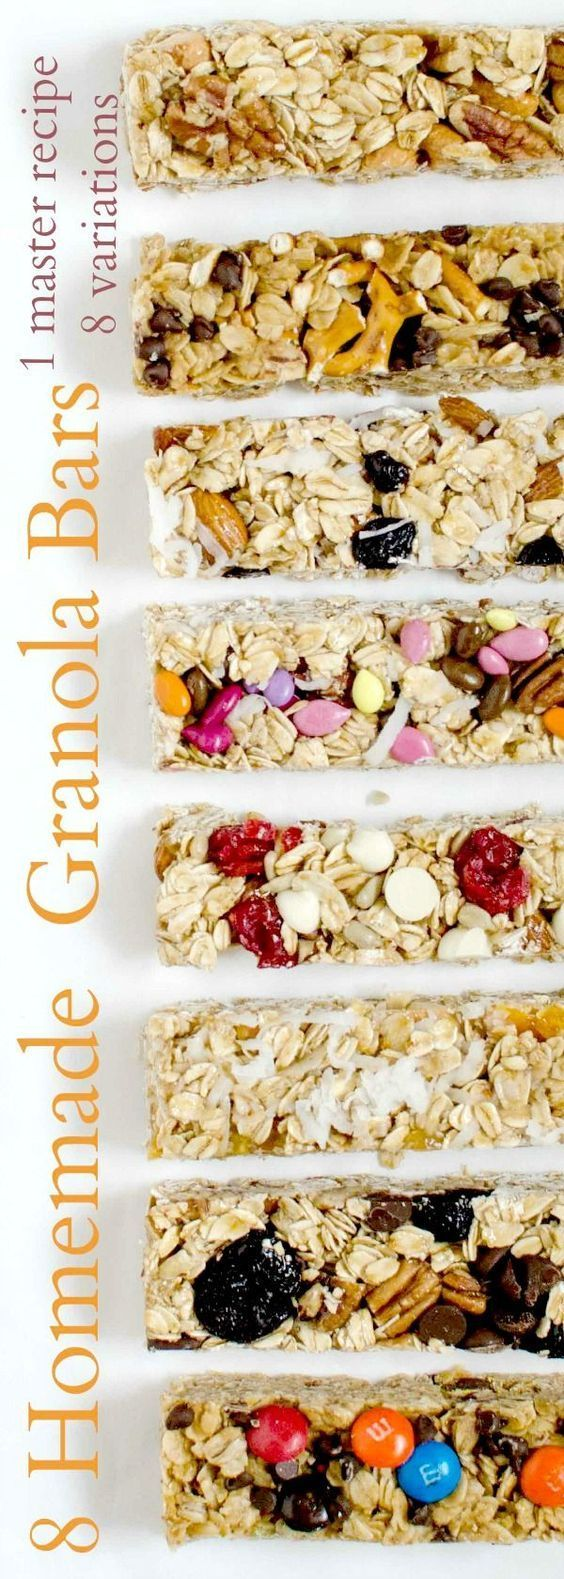 8 Easy Homemade Granola Bar Recipes | Bless This Mess Please